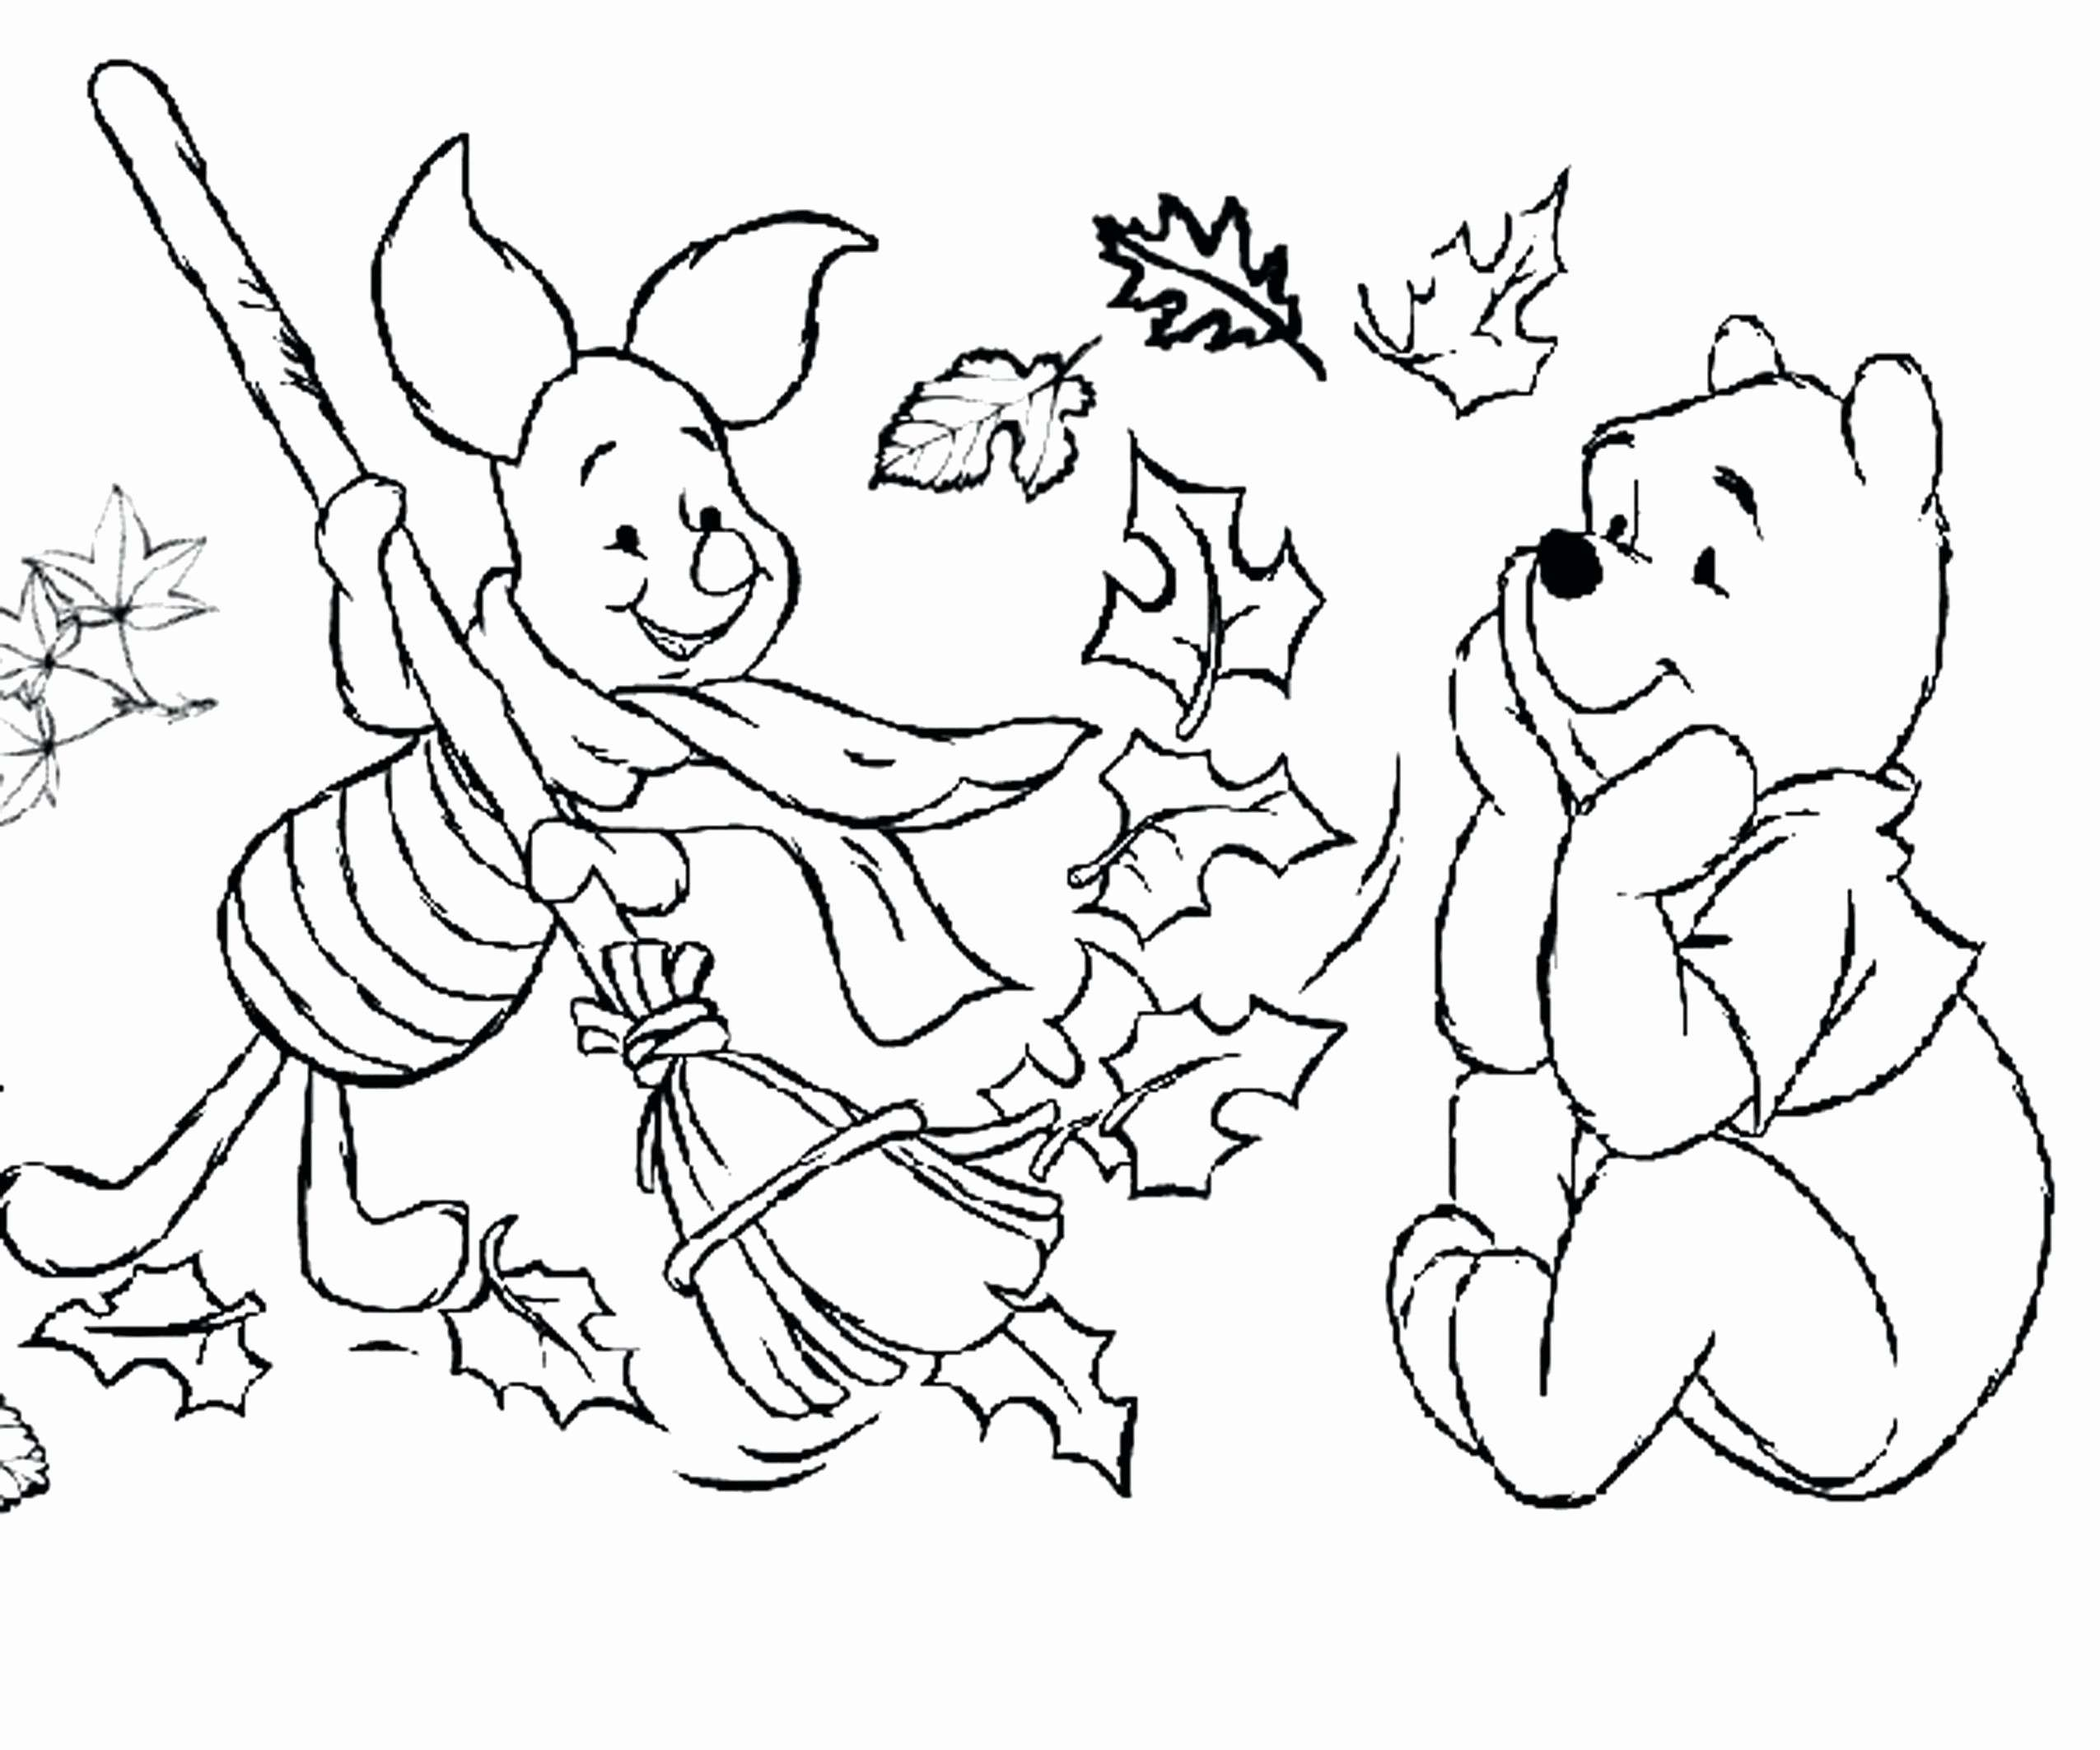 Hispanic Heritage Coloring Pages  Gallery 20m - To print for your project